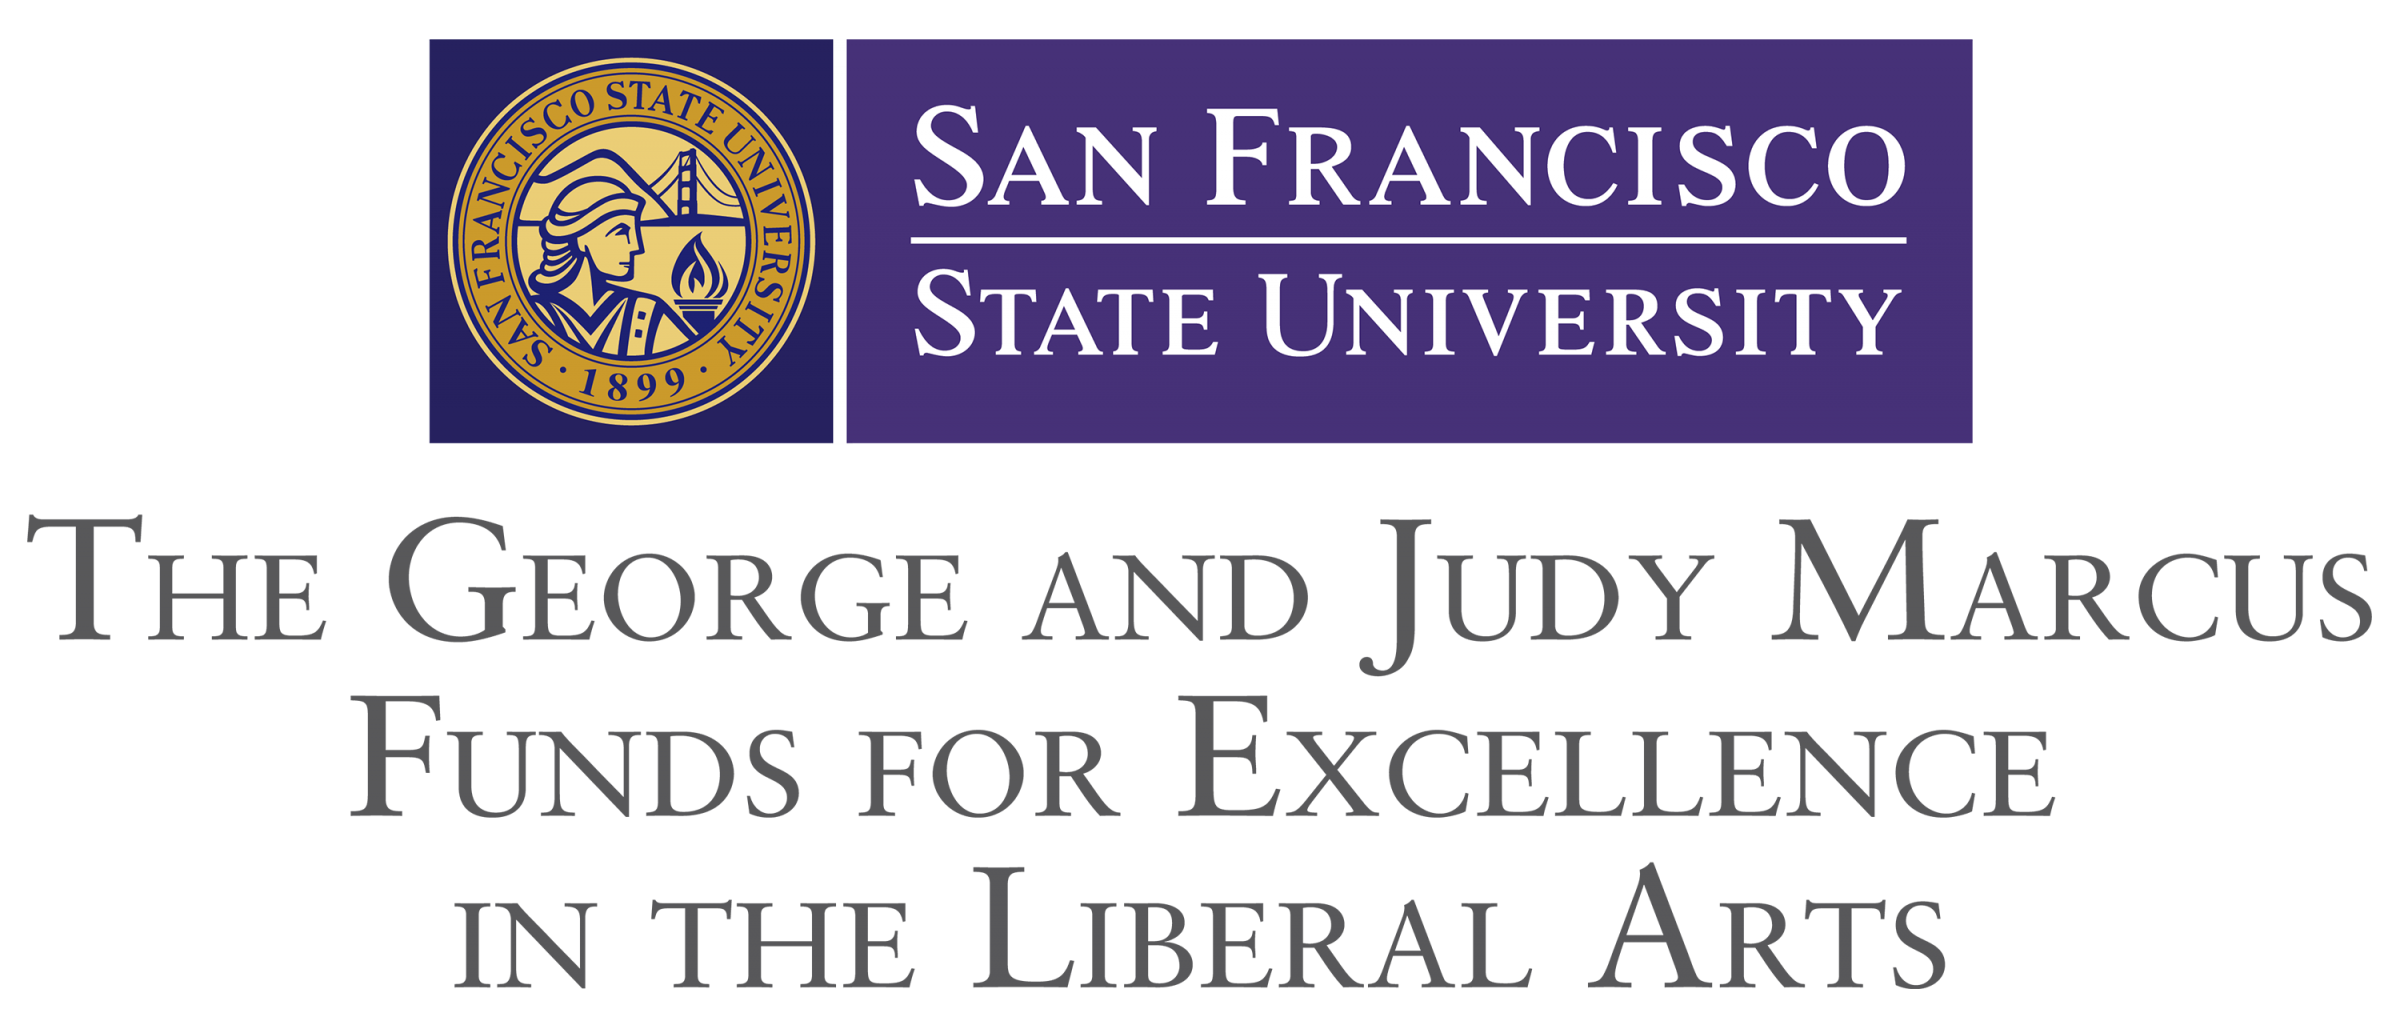 GEORGE AND JUDY MARCUS FUNDS FOR EXCELLENCE IN THE LIBERAL ARTS